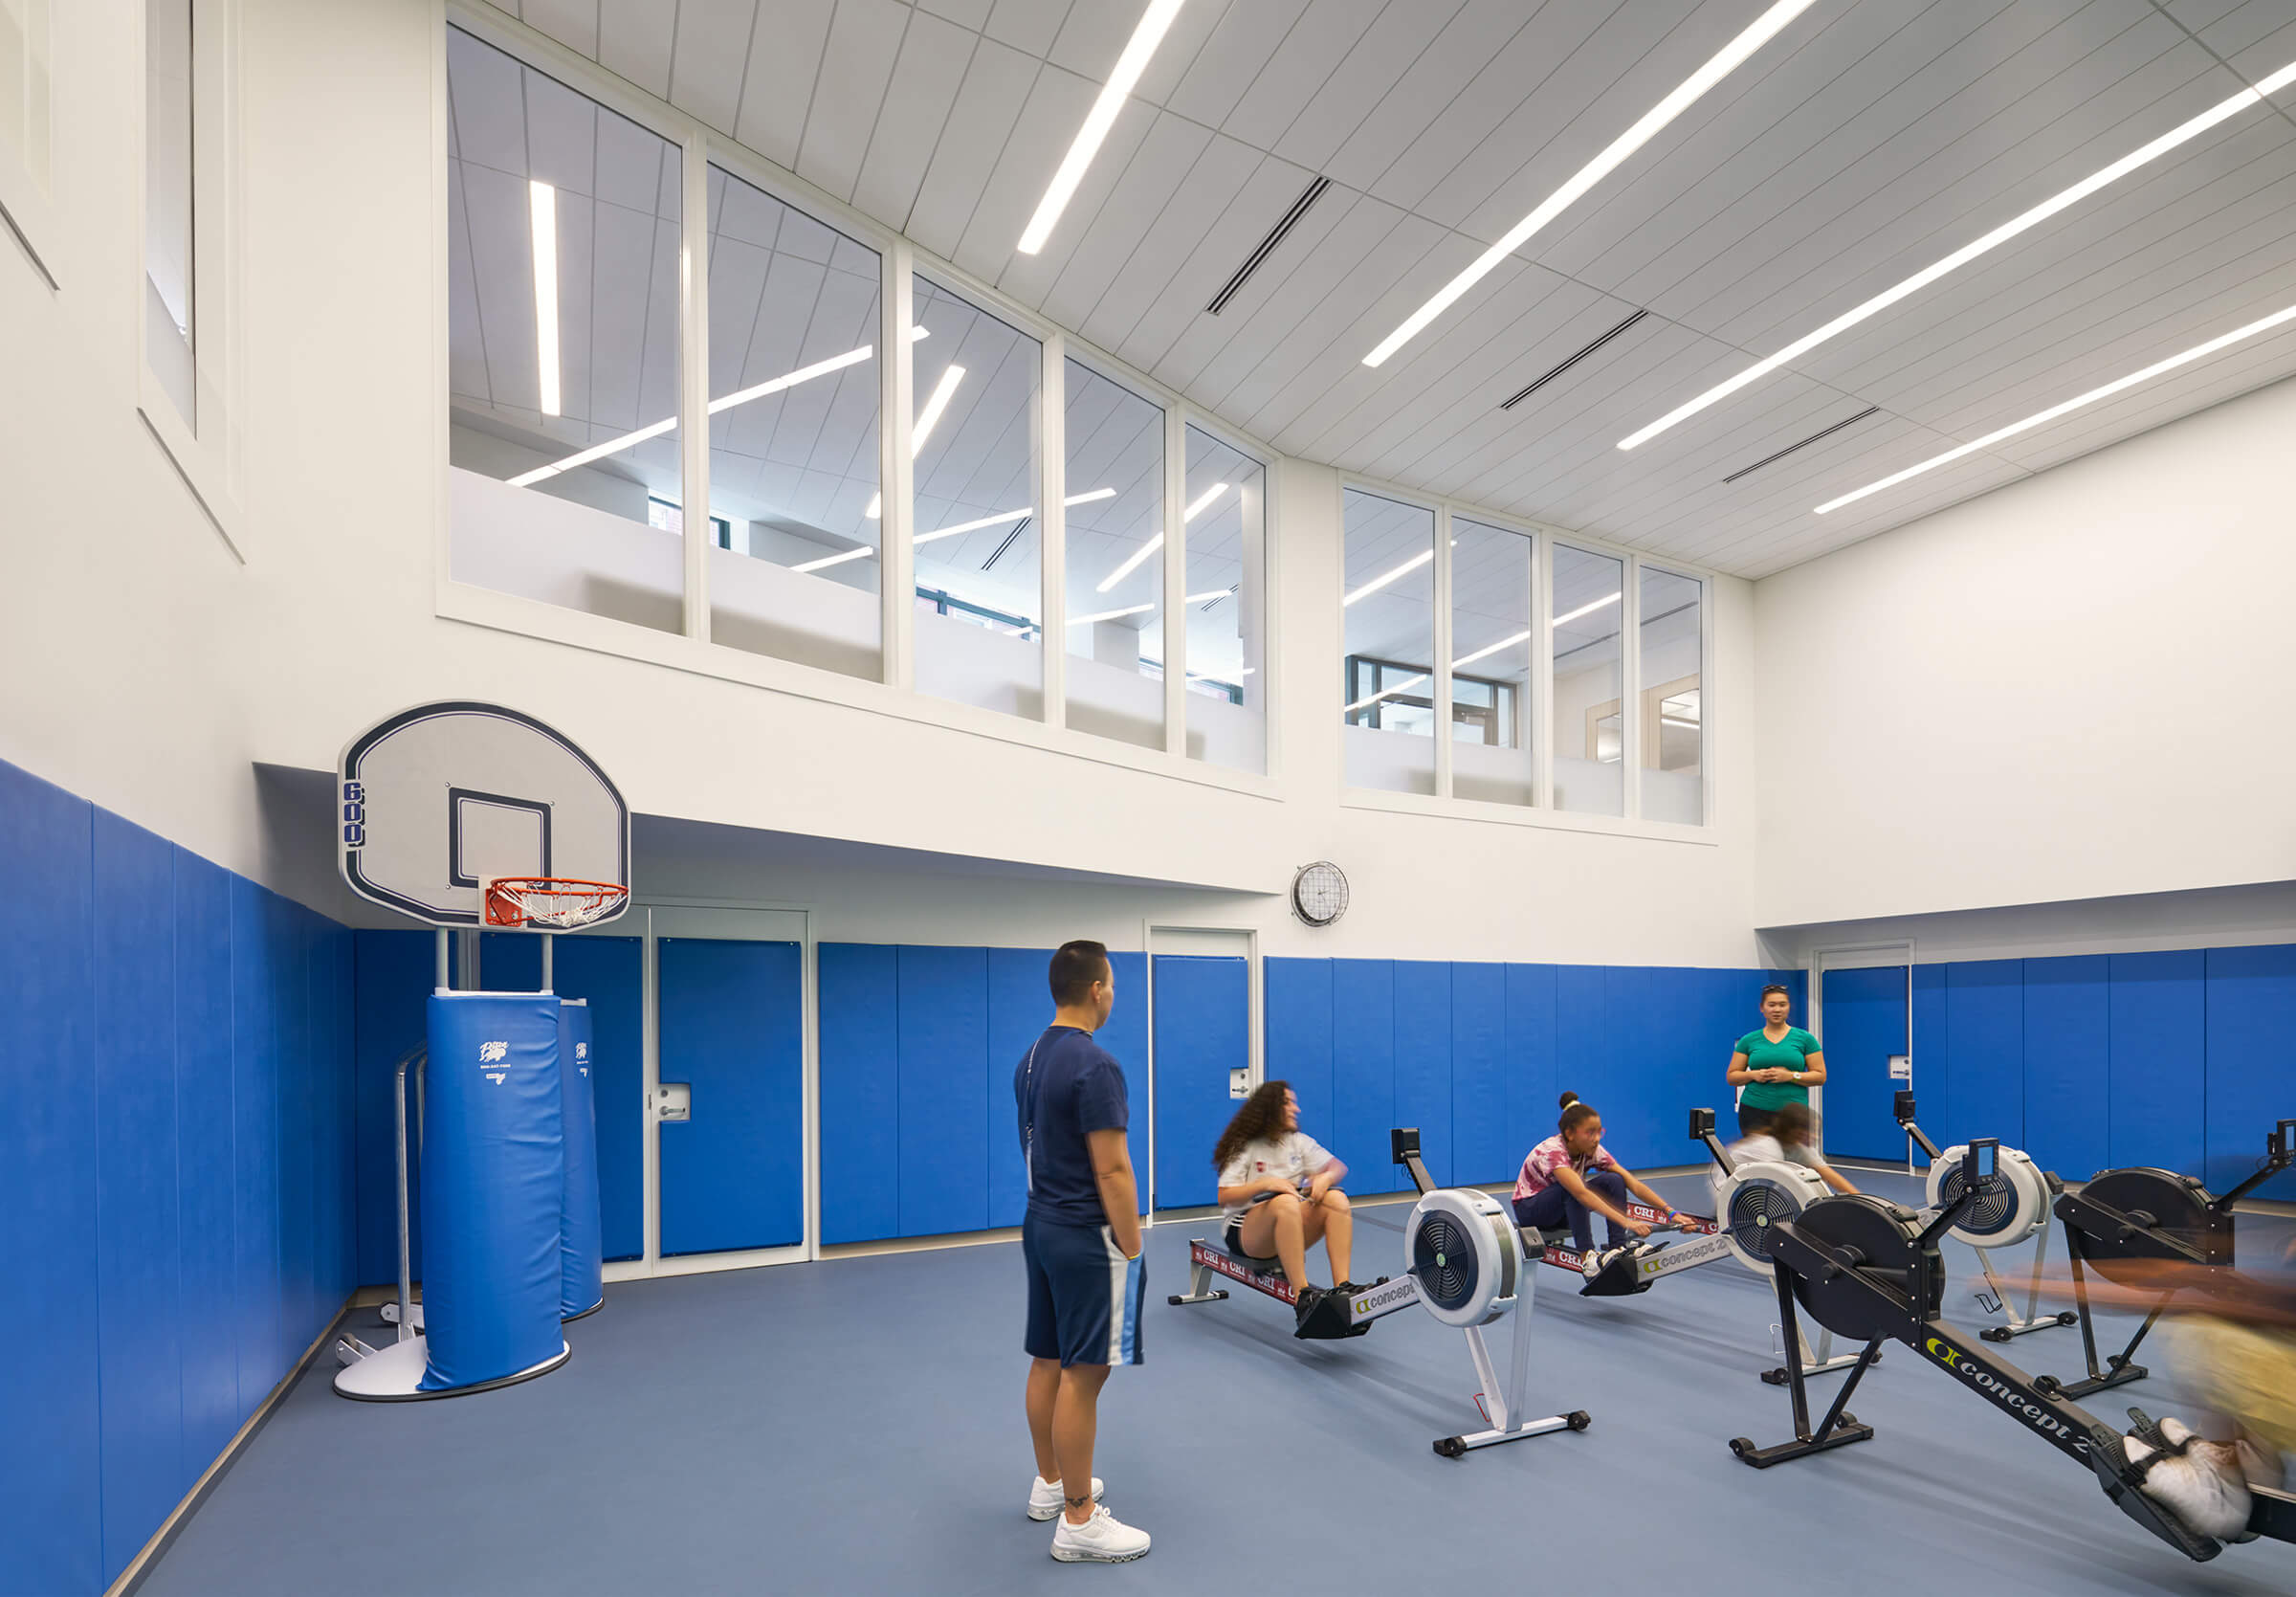 Basketball hoop to the left of students practicing on stationary rowing machines on a royal blue background and windows near the ceiling..